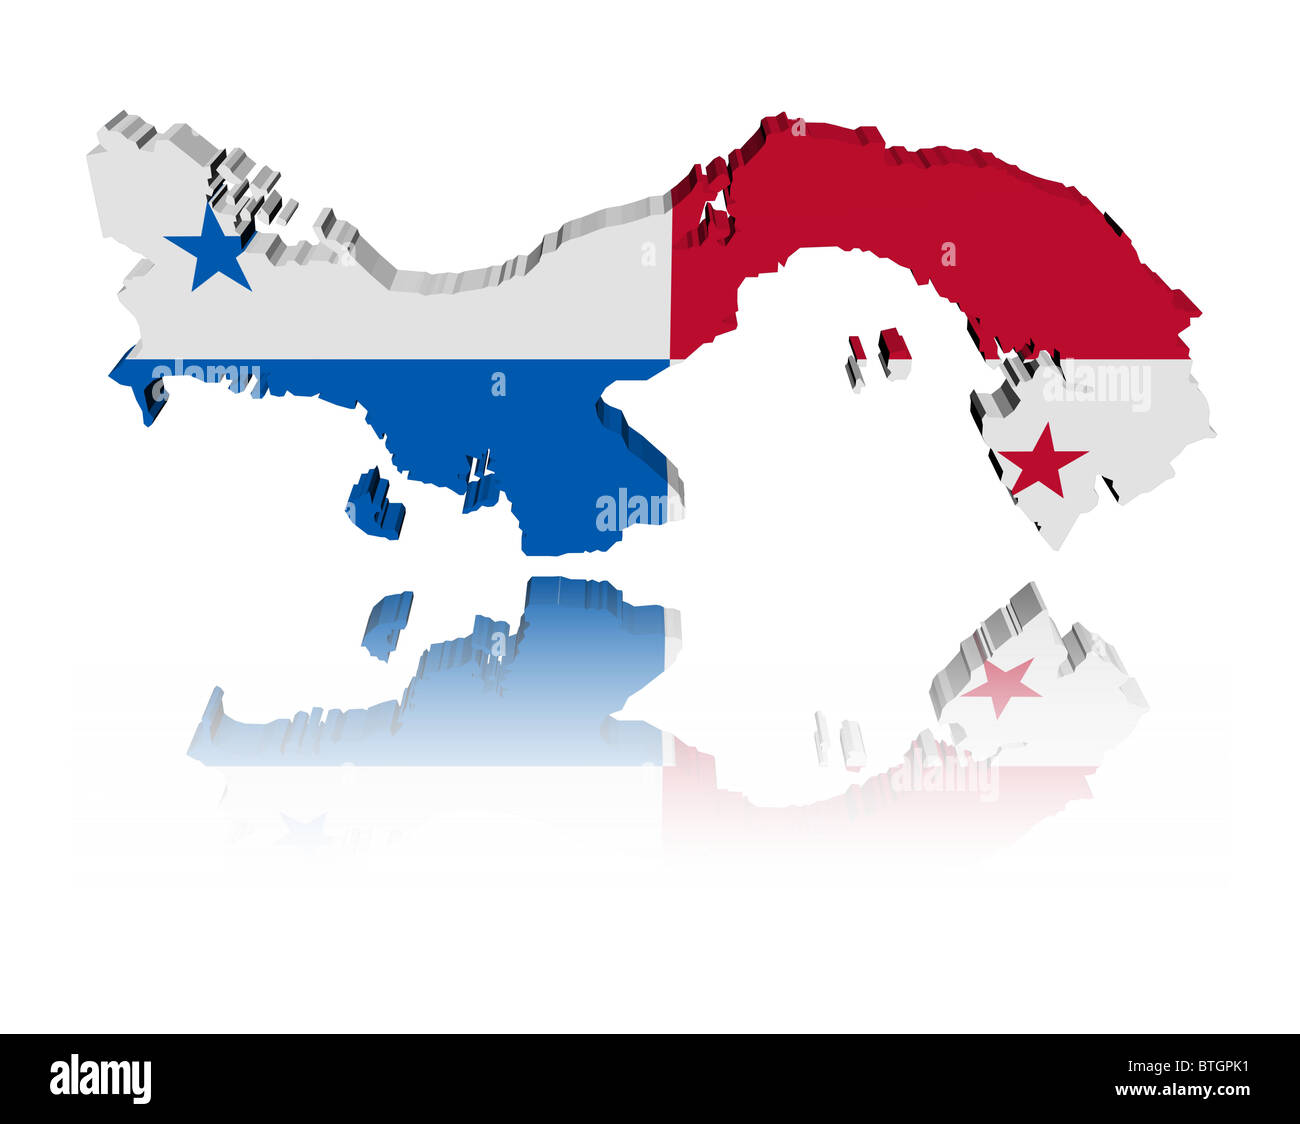 1252882a Panama map flag 3d render with reflection illustration Stock Photo ...